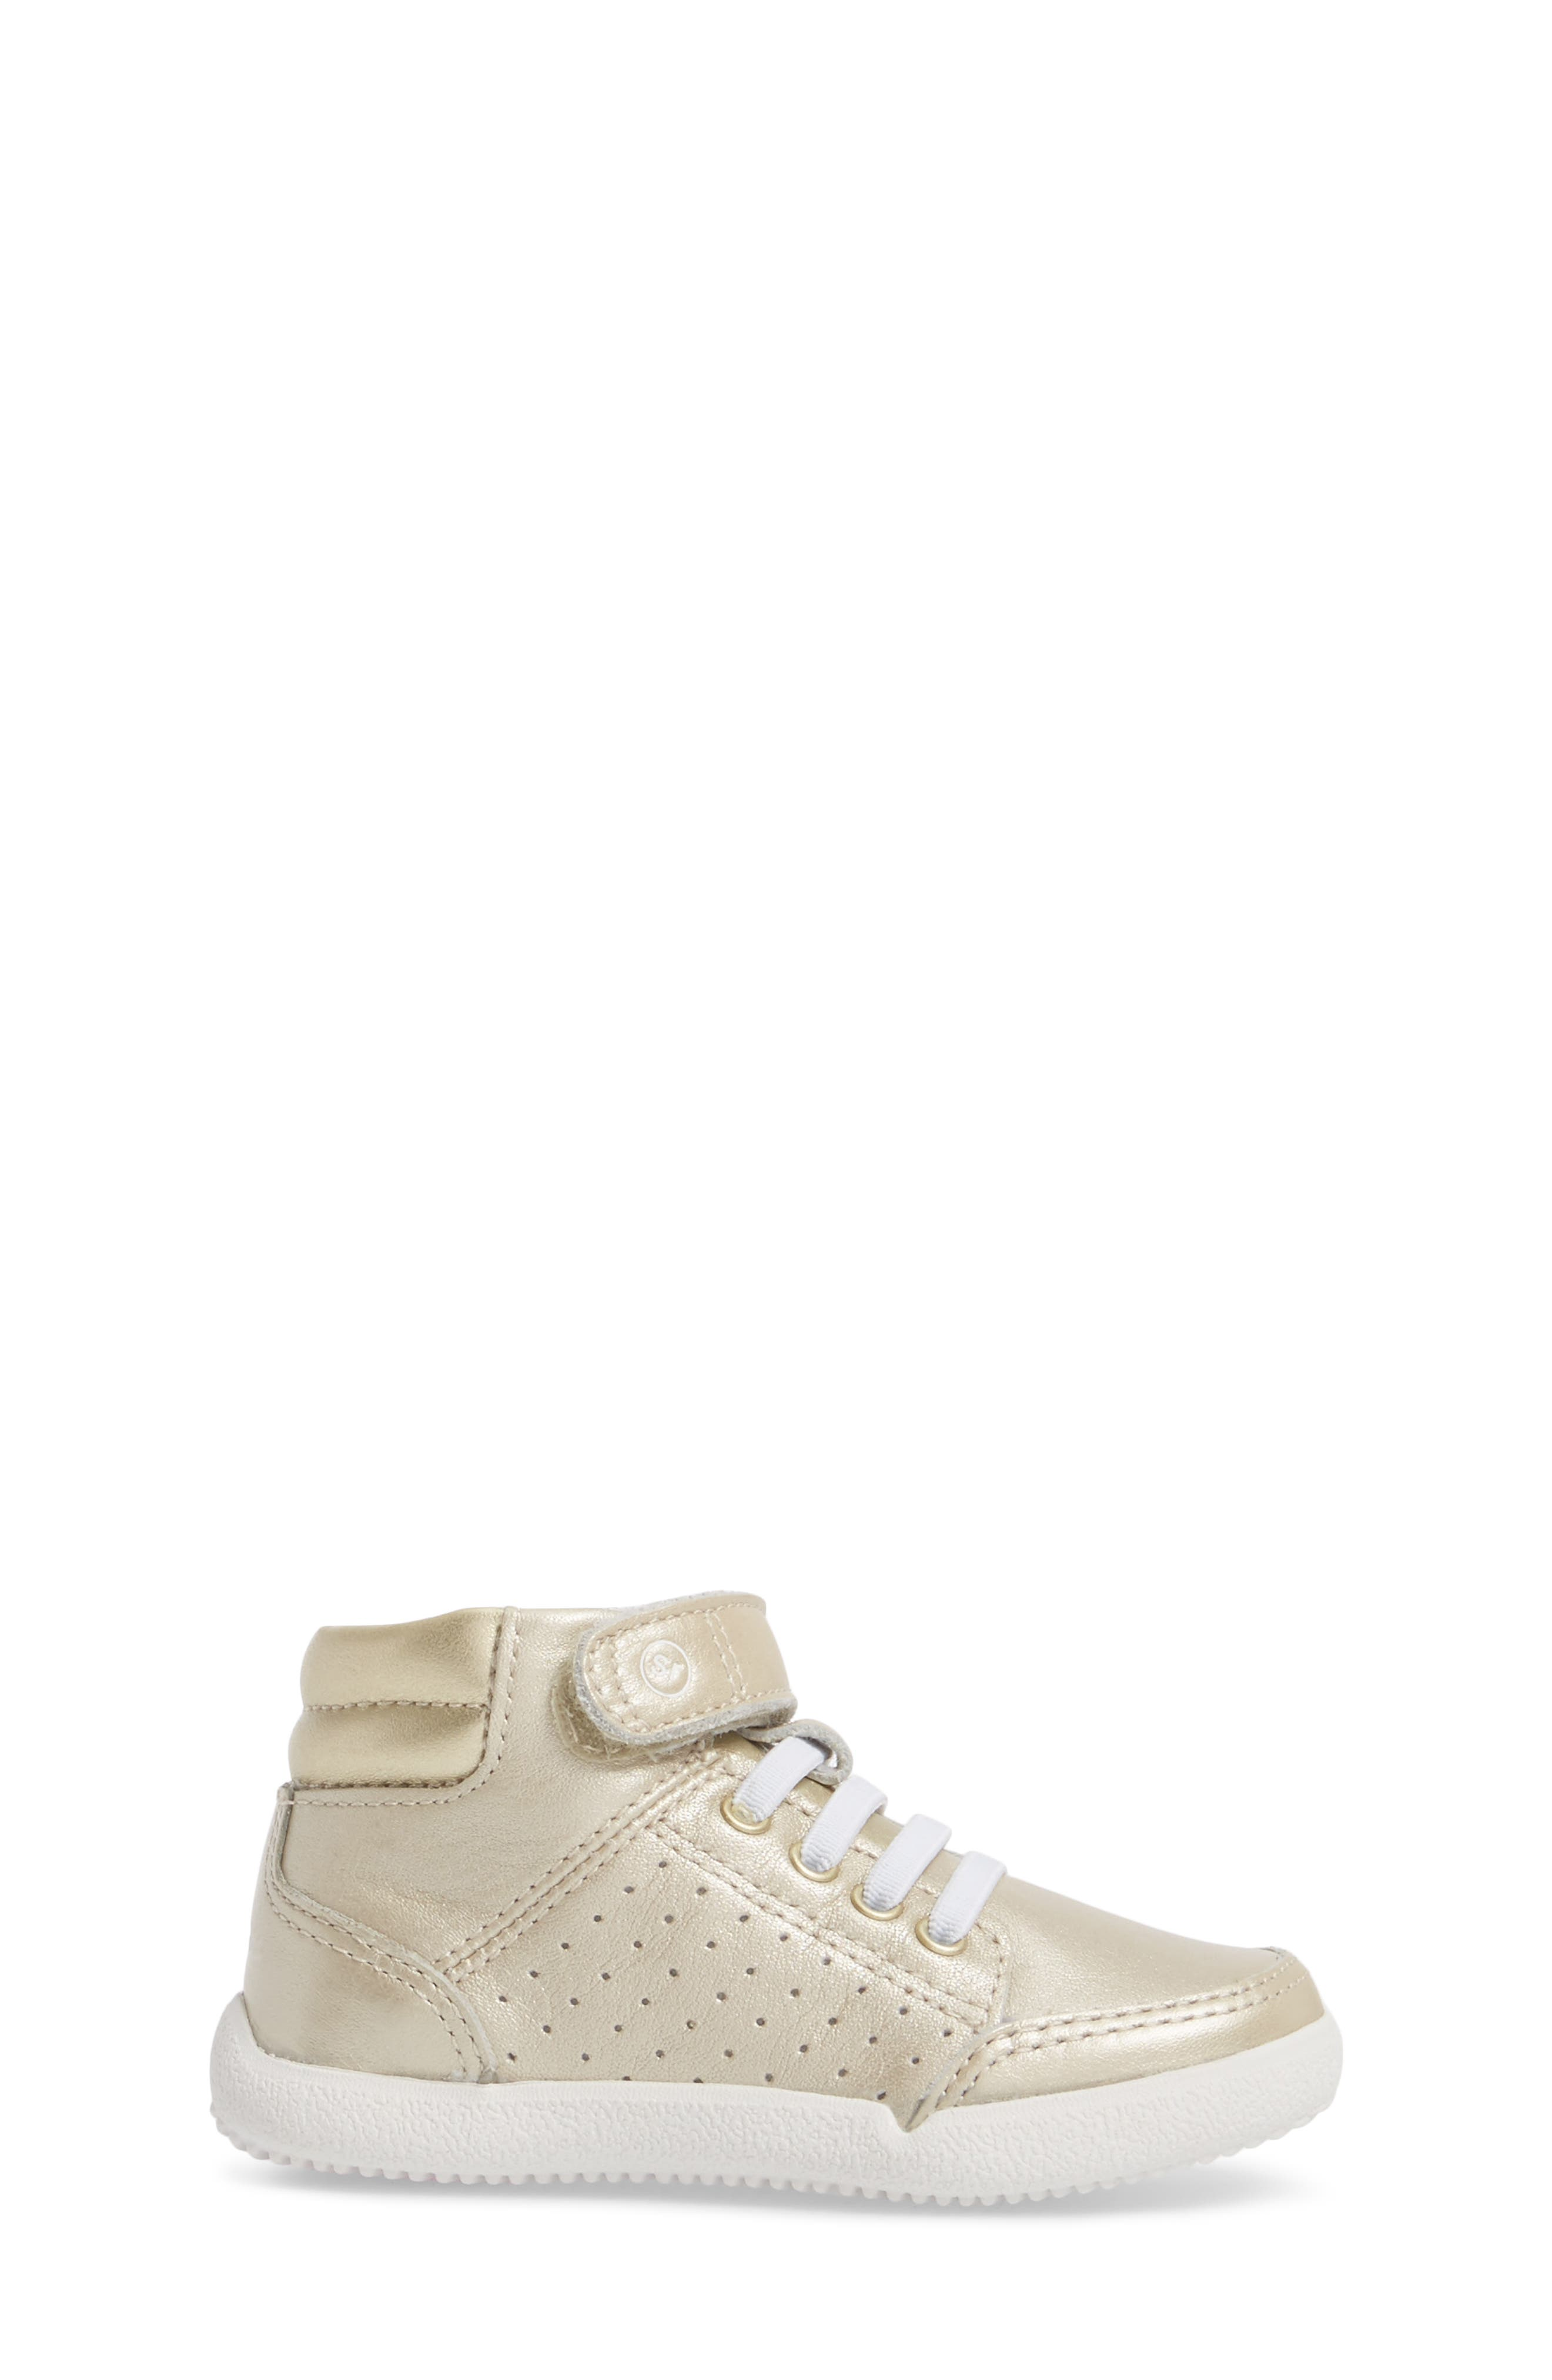 Stone High Top Sneaker,                             Alternate thumbnail 3, color,                             Champagne Leather